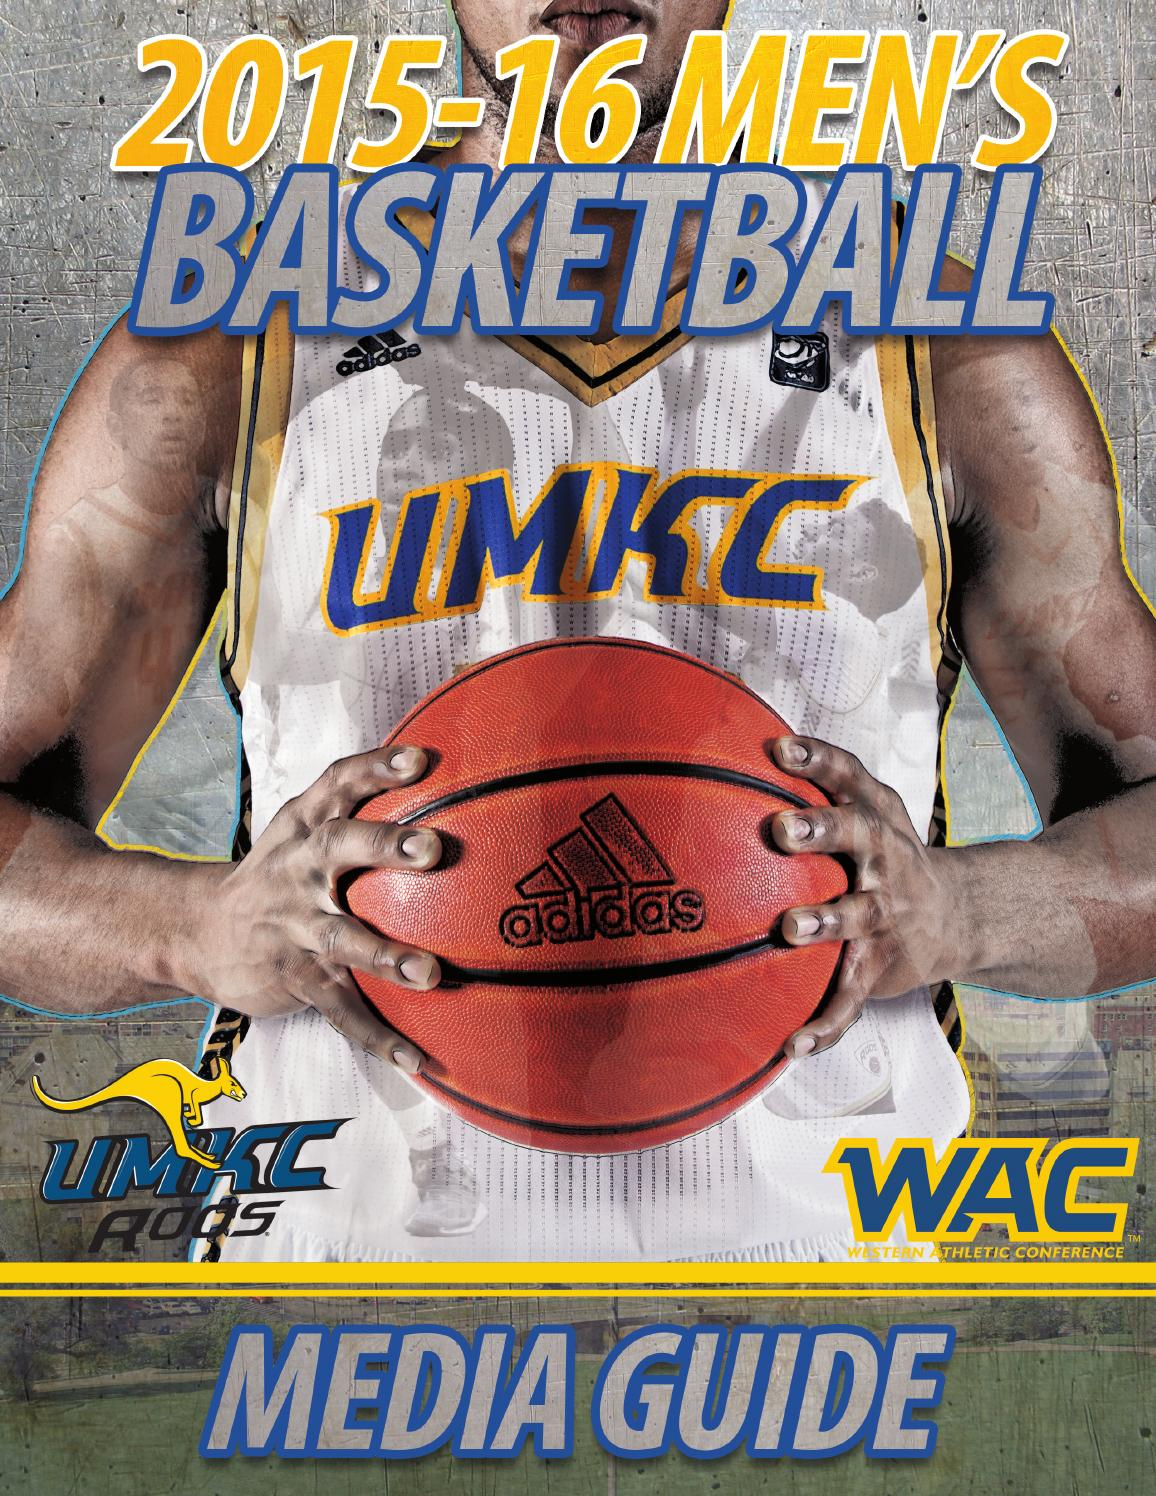 398d0ae51 2015-16 UMKC Men s Basketball Media Guide by Nik Busch - issuu